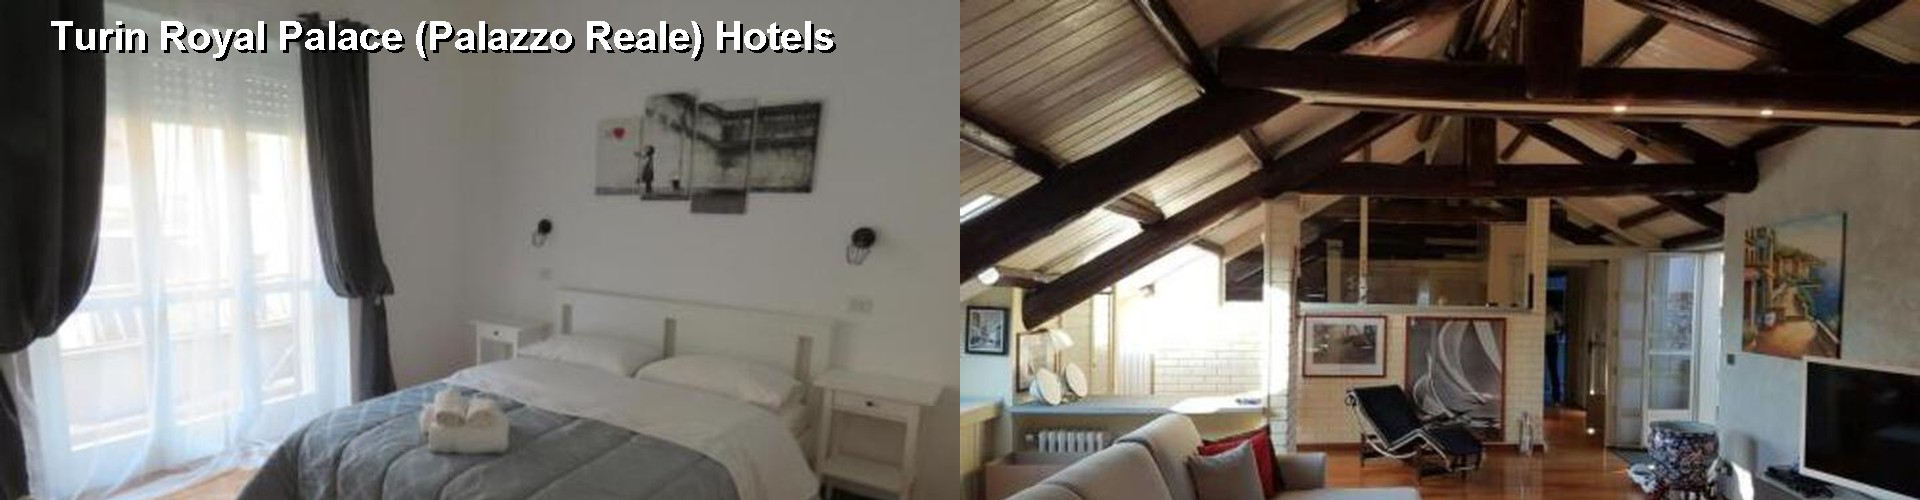 5 Best Hotels near Turin Royal Palace (Palazzo Reale)